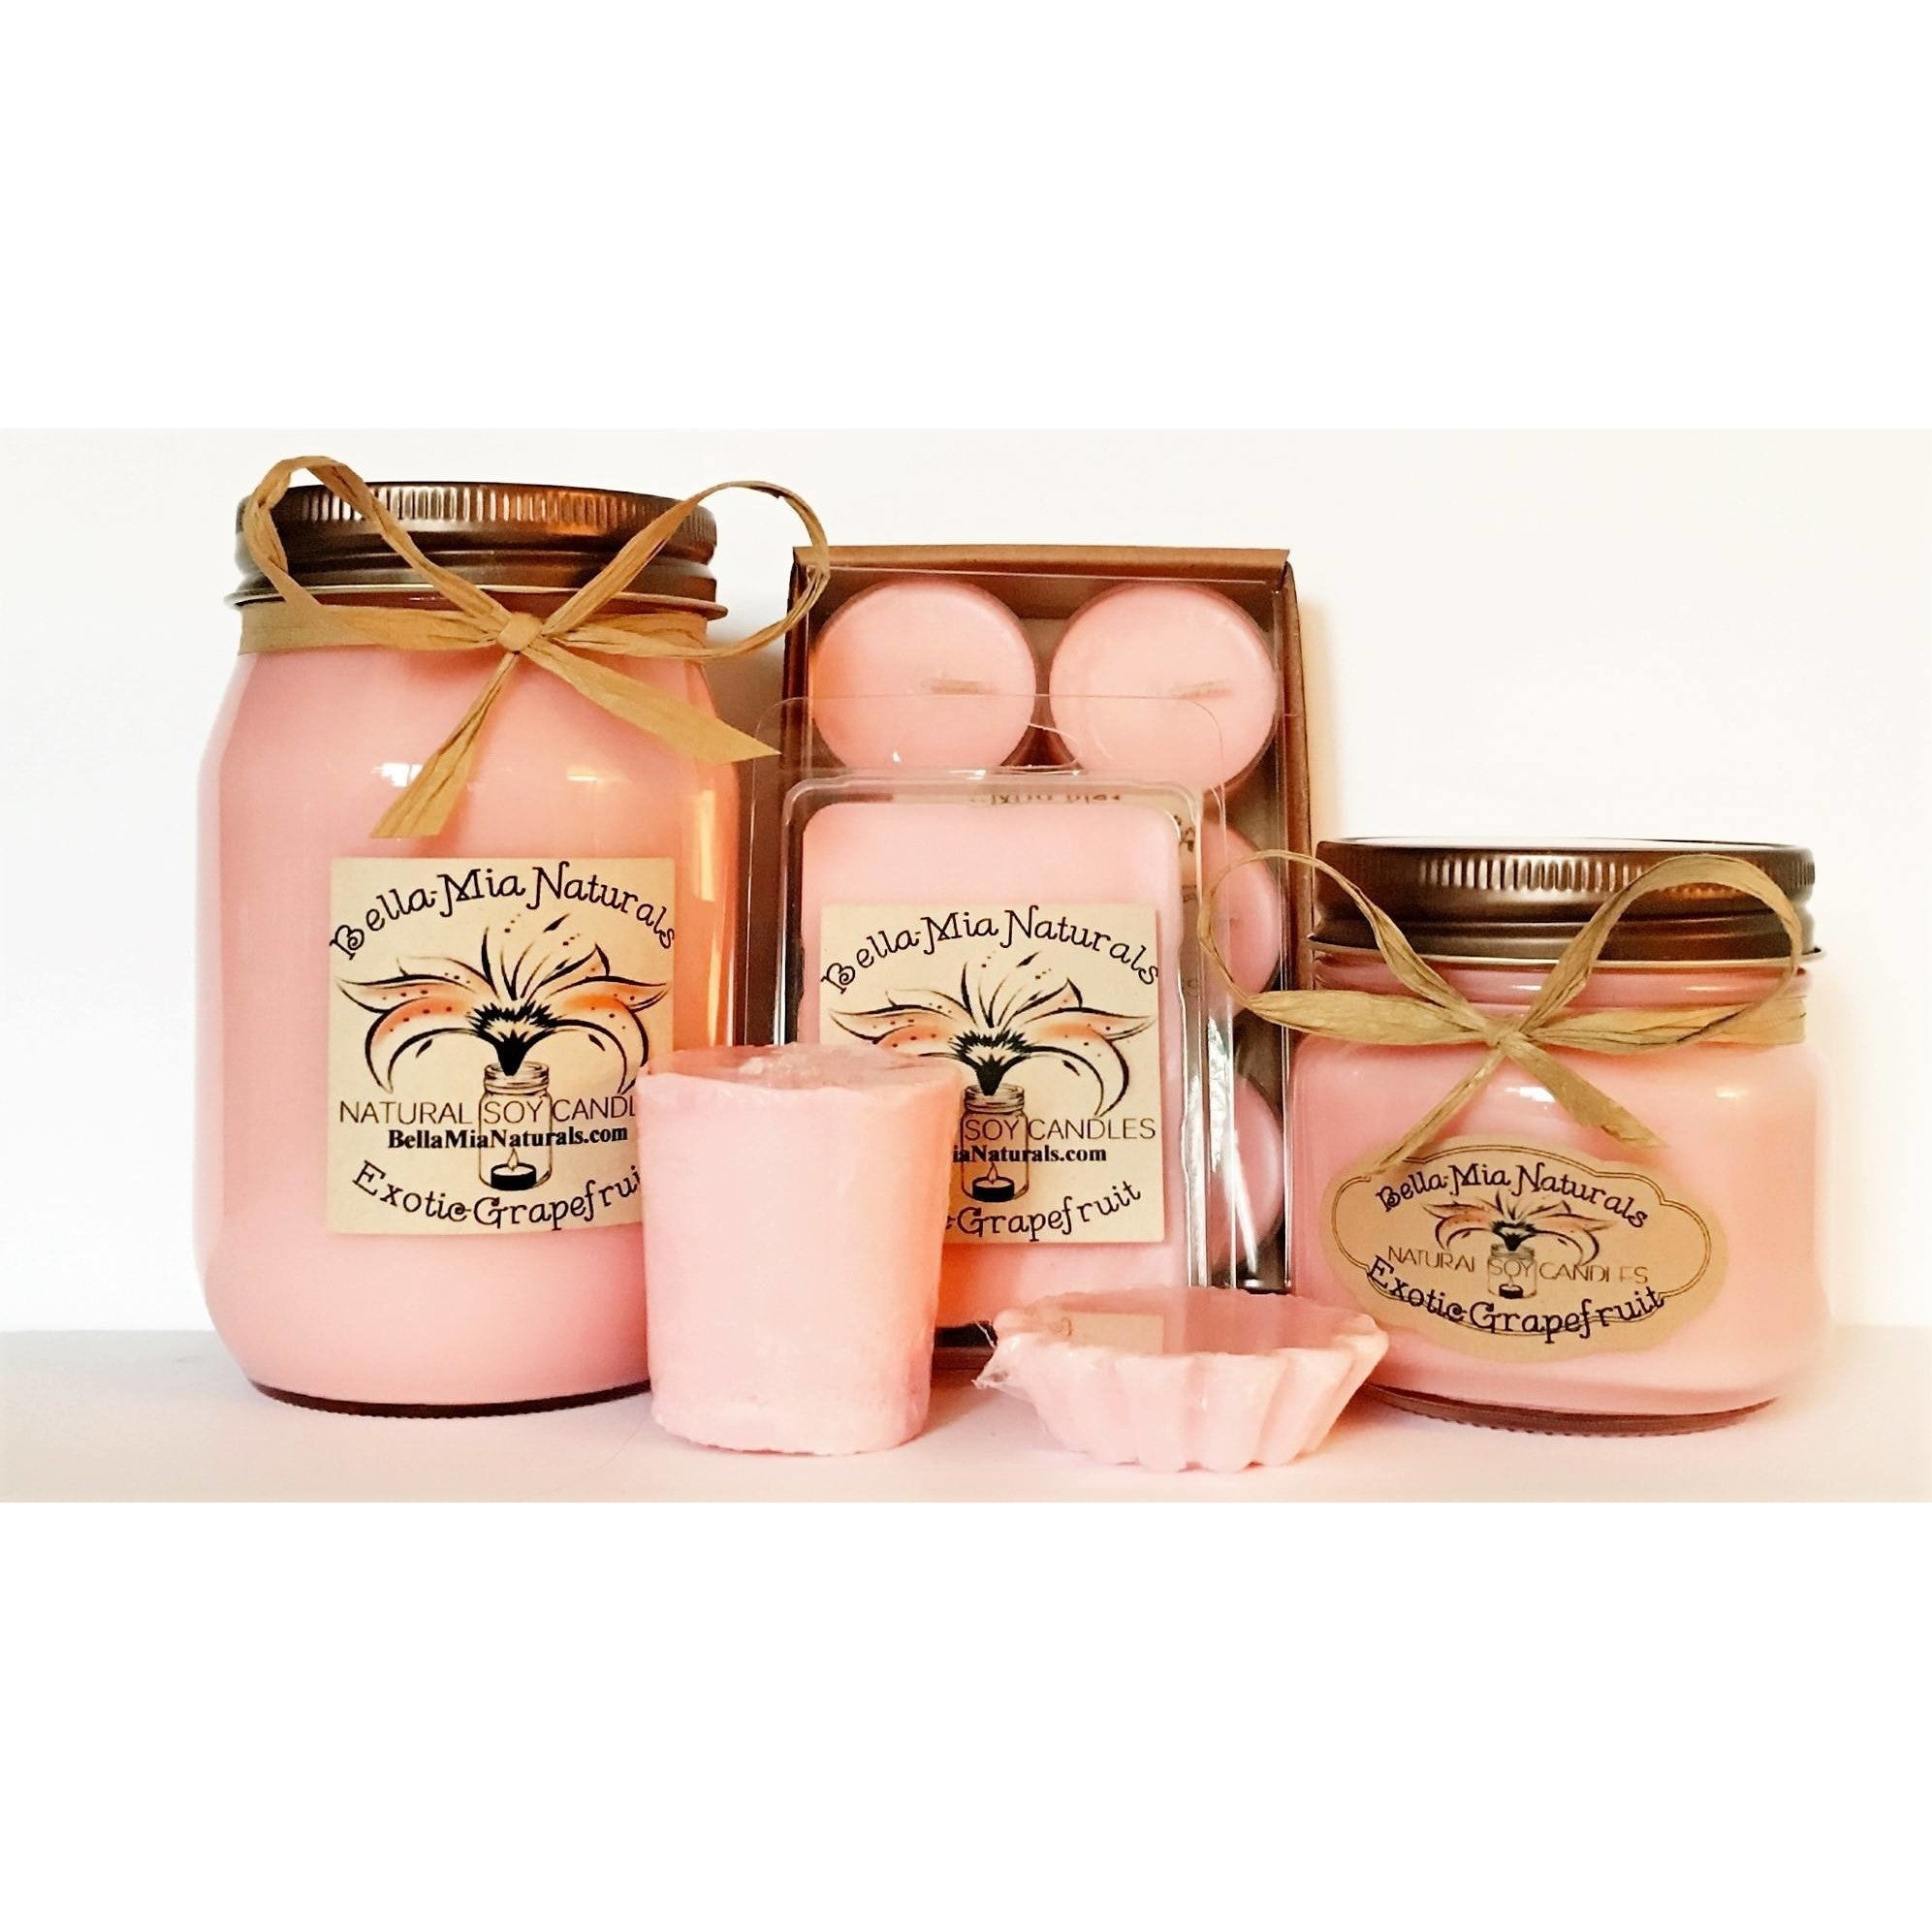 Exotic-Grapefruit Natural Hand Poured Soy Candles -  - Bella-Mia Naturals All Natural Soy Candles & Lip Balms - 1